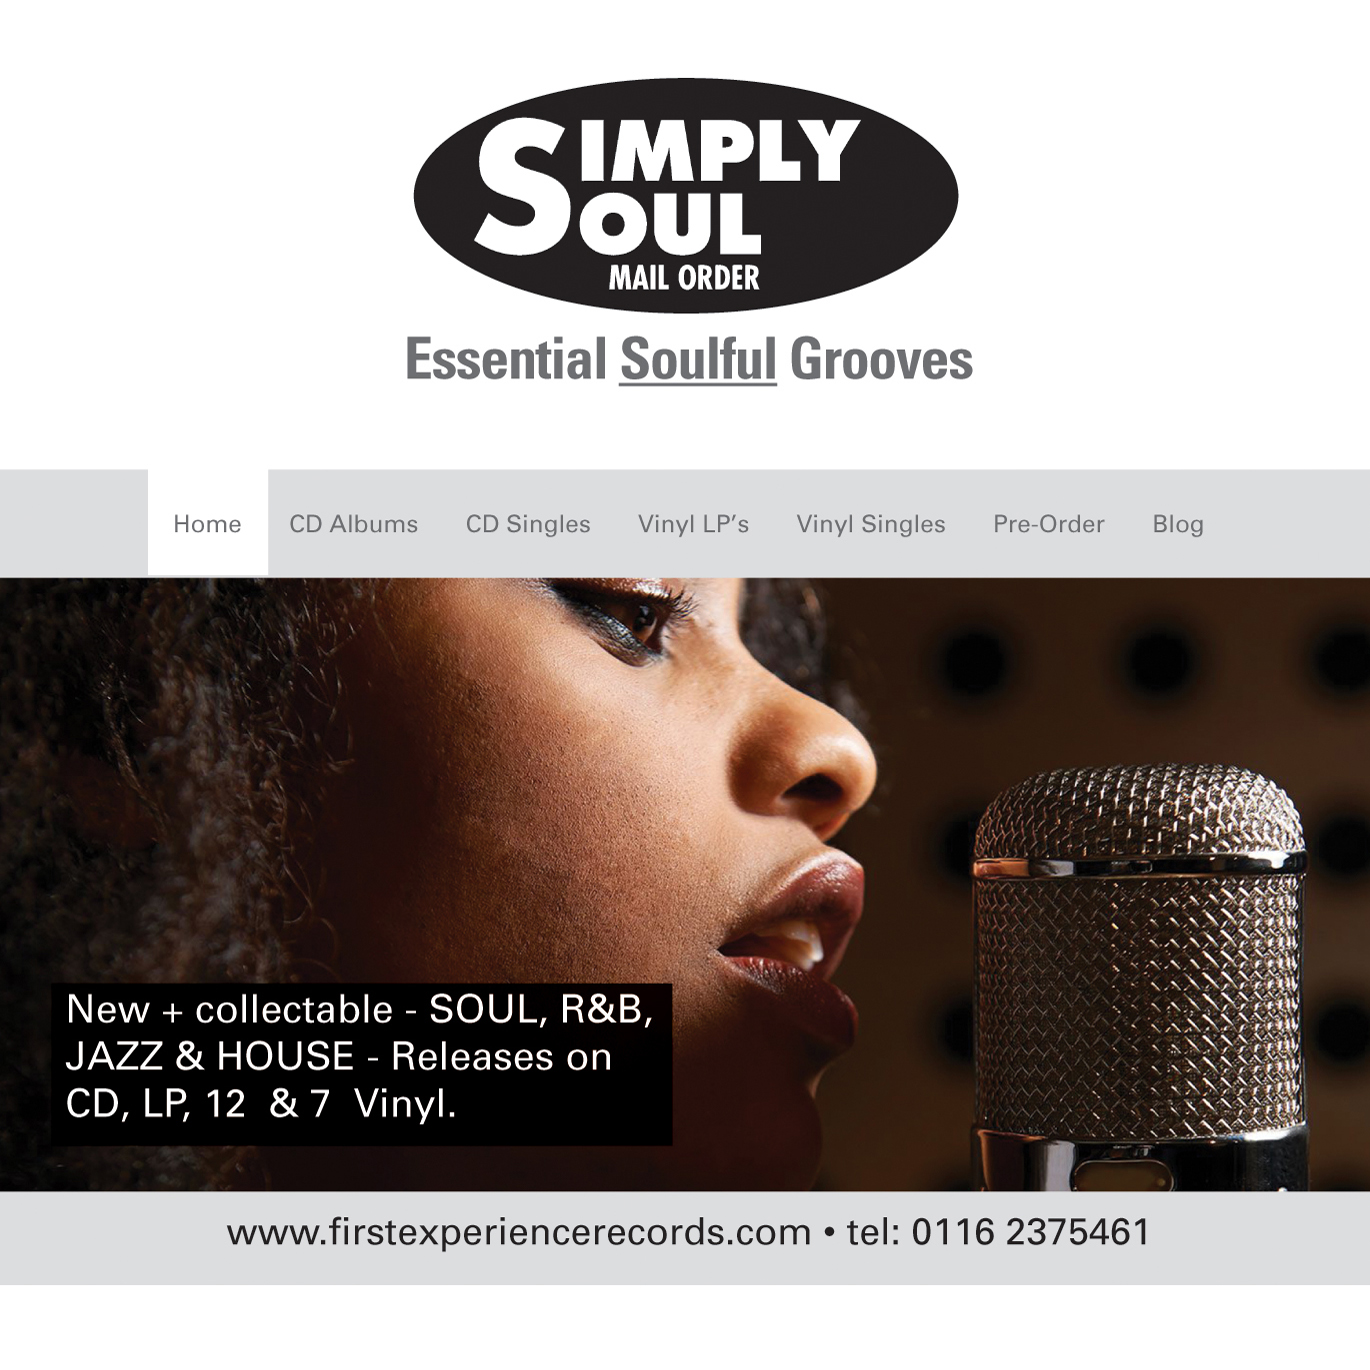 Simply Soul Records